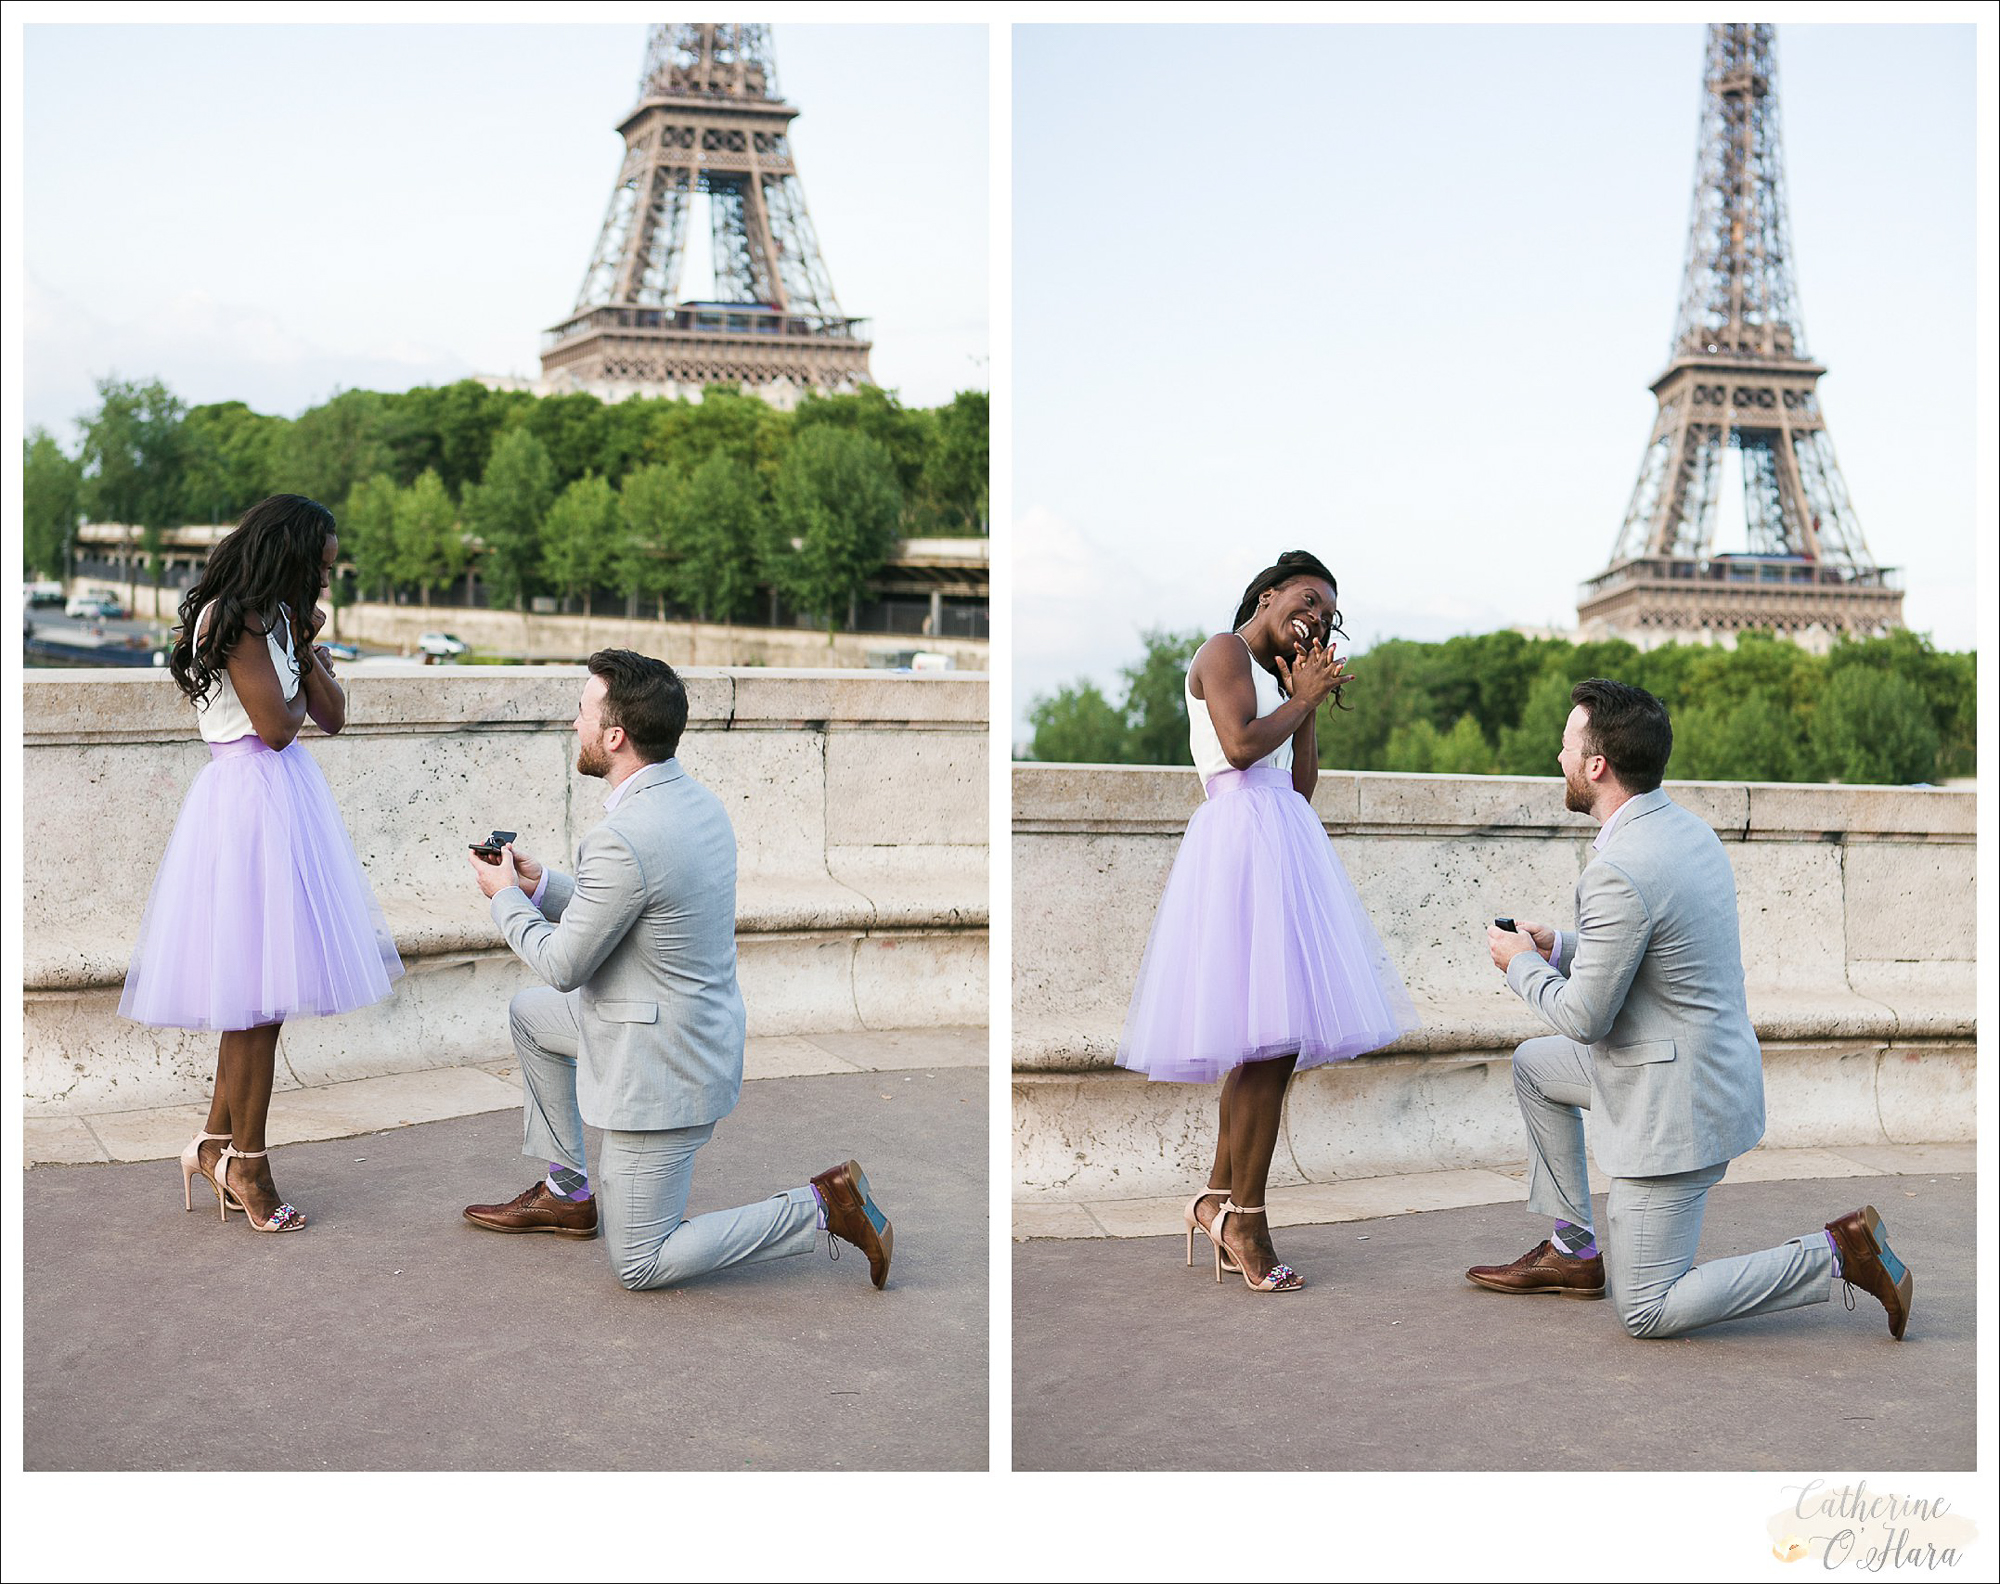 surprise proposal engagement photographer paris france-17.jpg